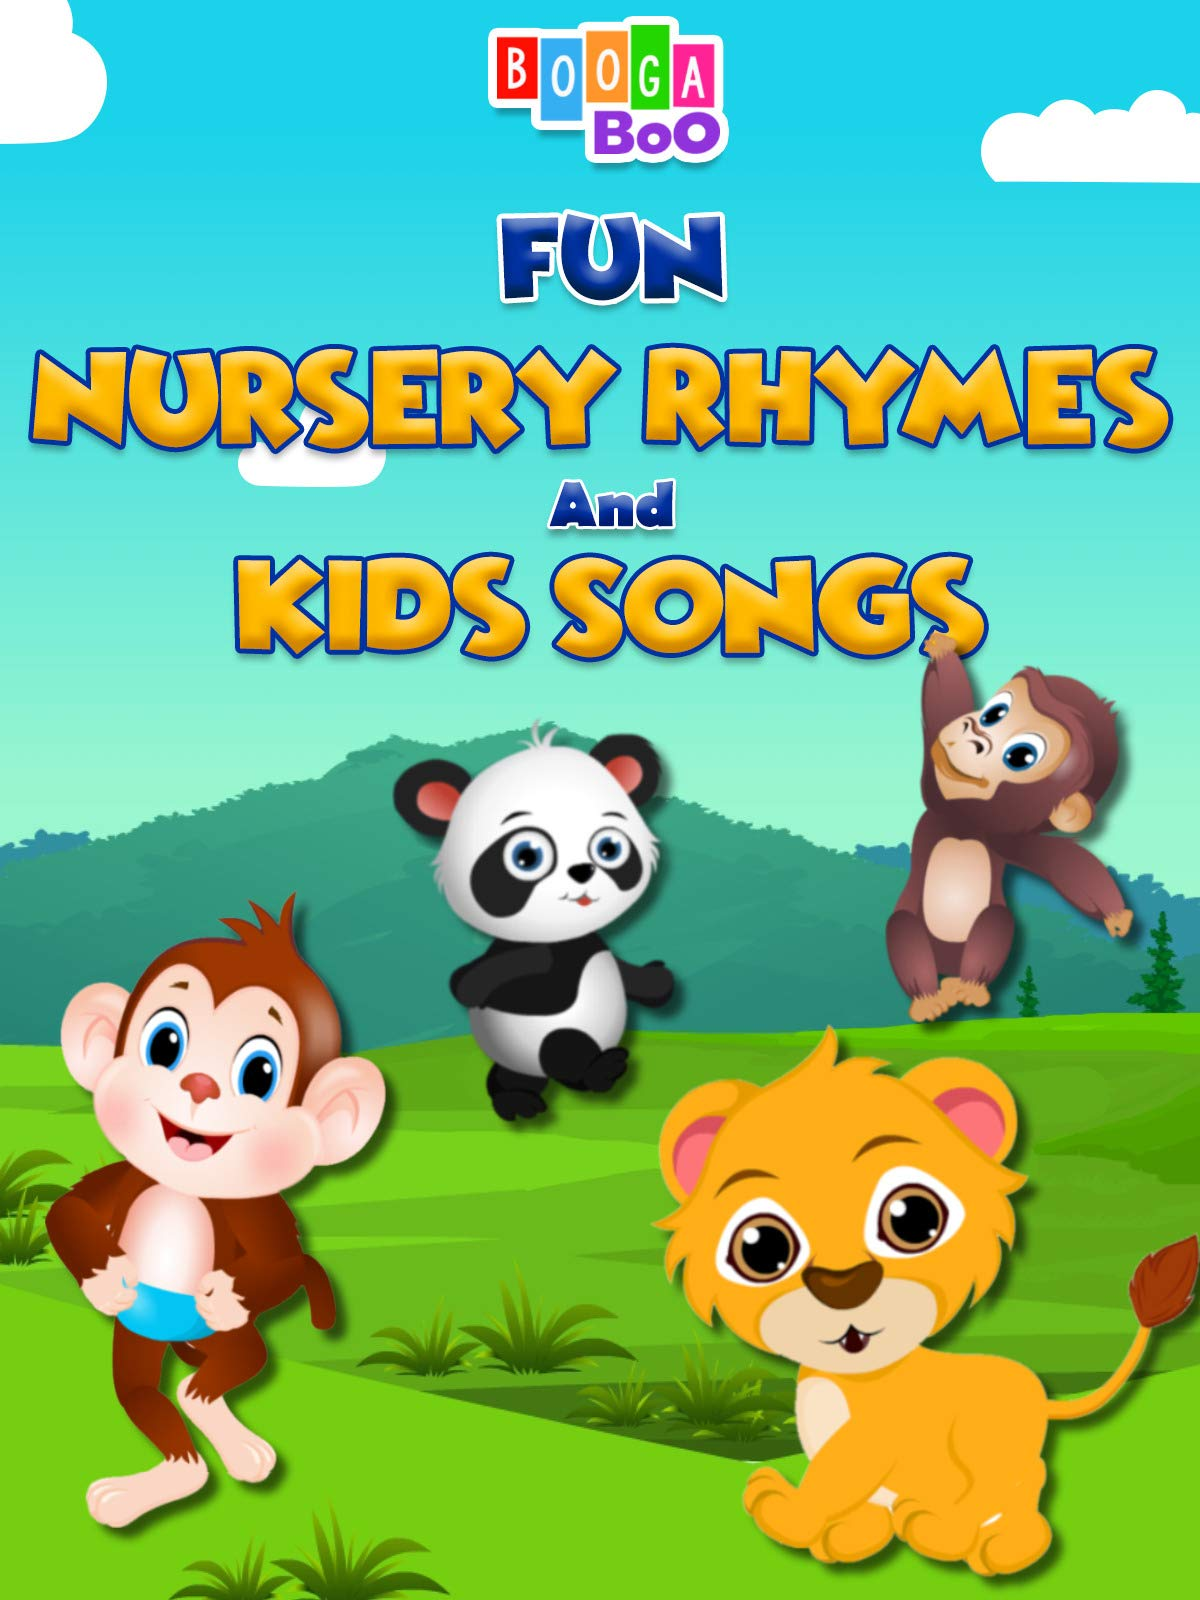 Fun Nursery Rhymes and Kids Songs by Booga Boo on Amazon Prime Video UK